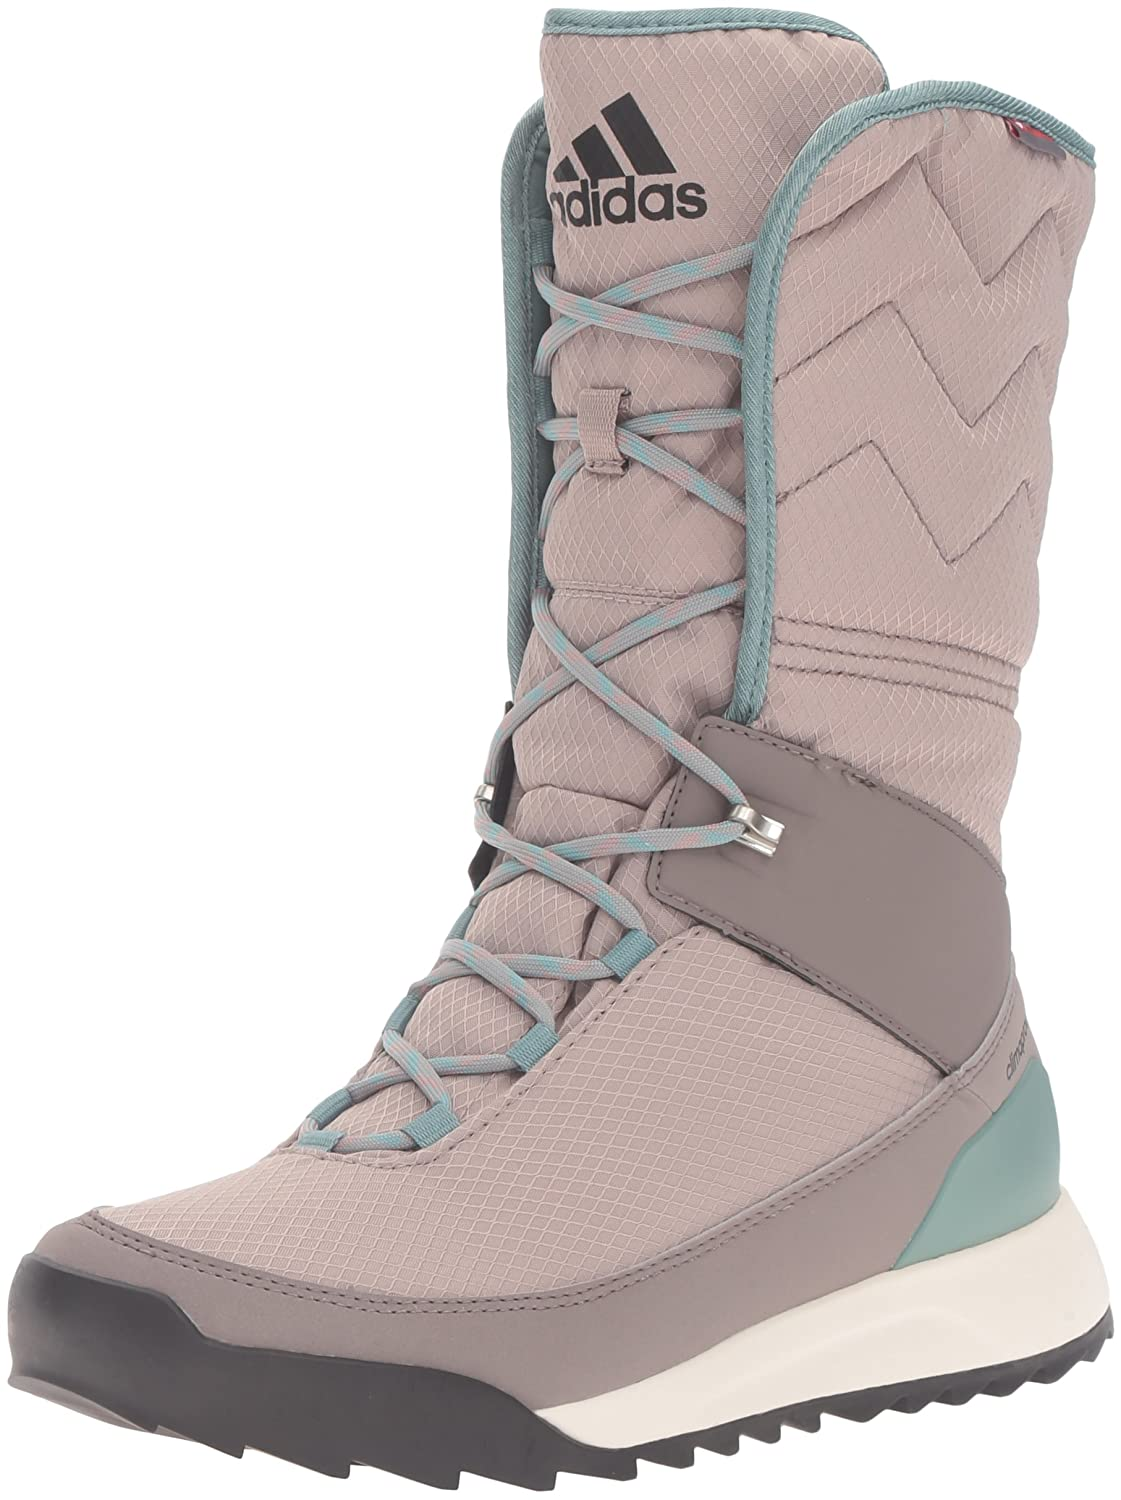 adidas Outdoor Women's CW Choleah High CP Leather Snow Boot